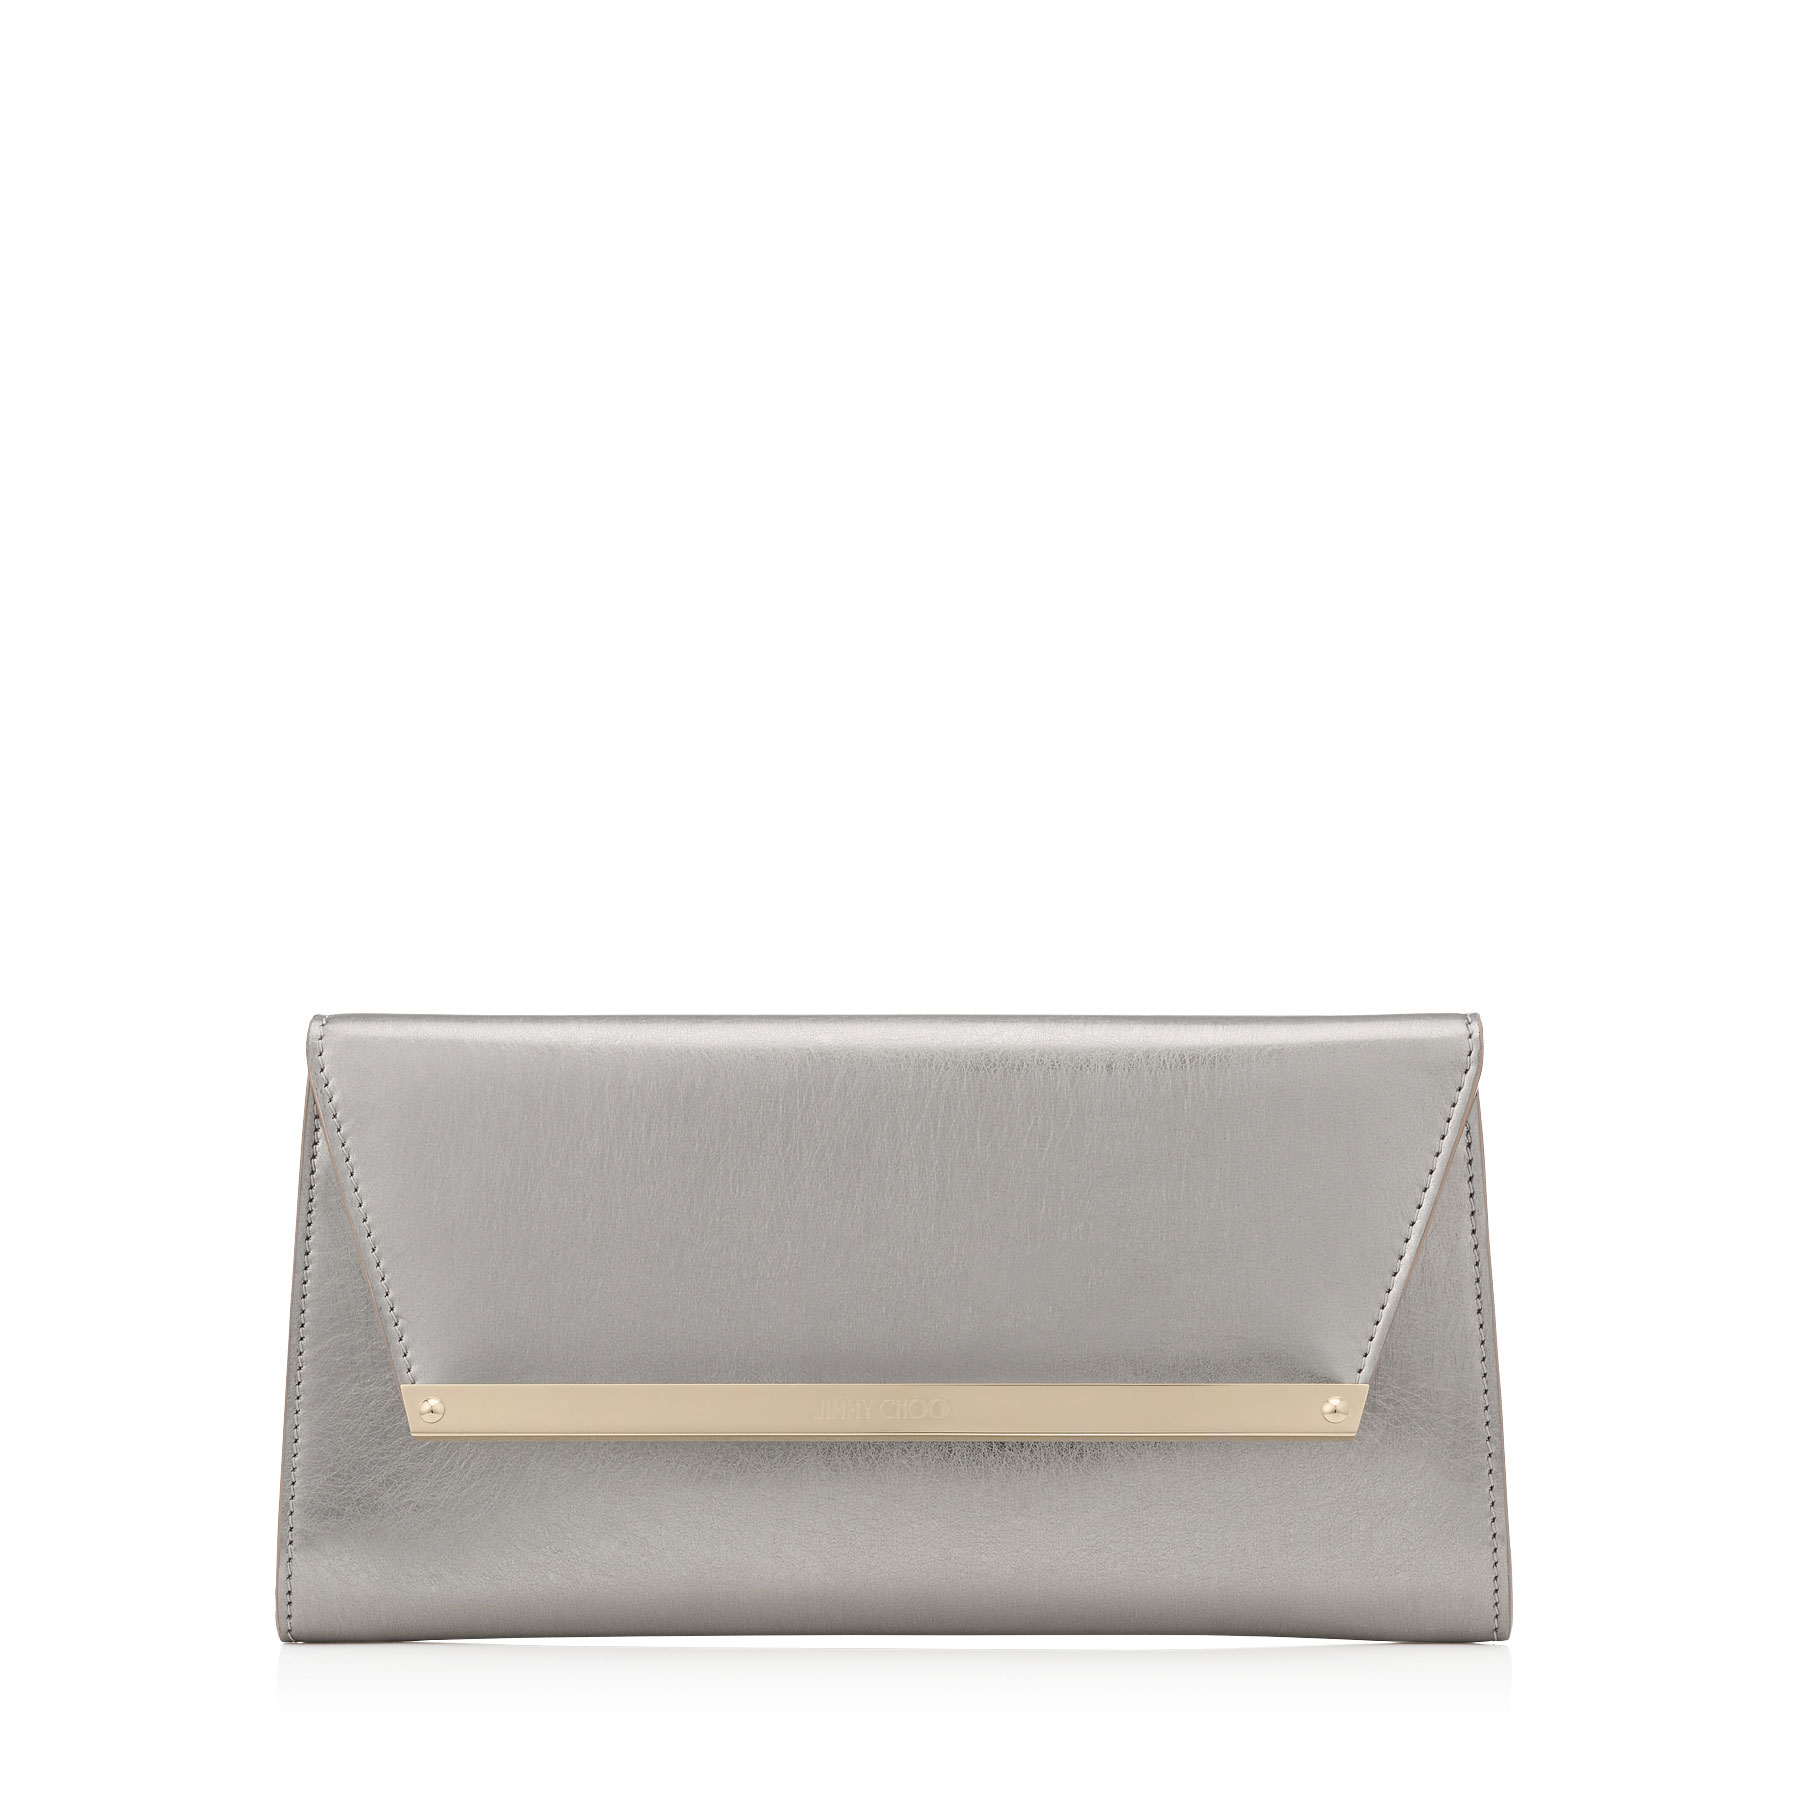 MARGOT Vintage Silver Etched Metallic Spazzolato Leather Accessory Clutch Bag